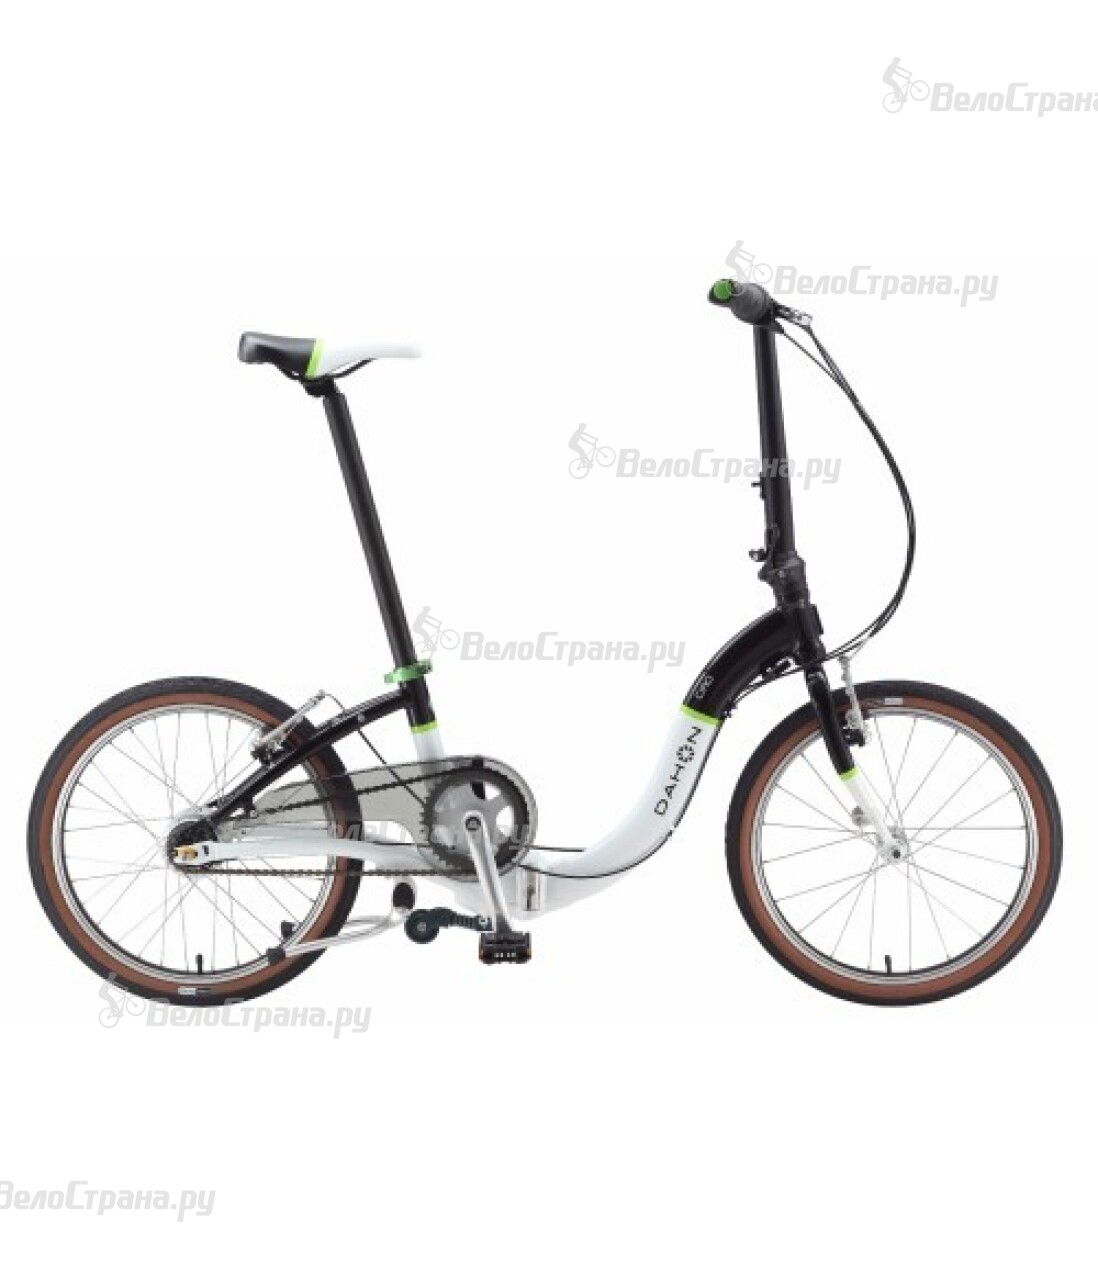 Велосипед Dahon Ciao D7 (2015) велосипед dahon speed d7 2016